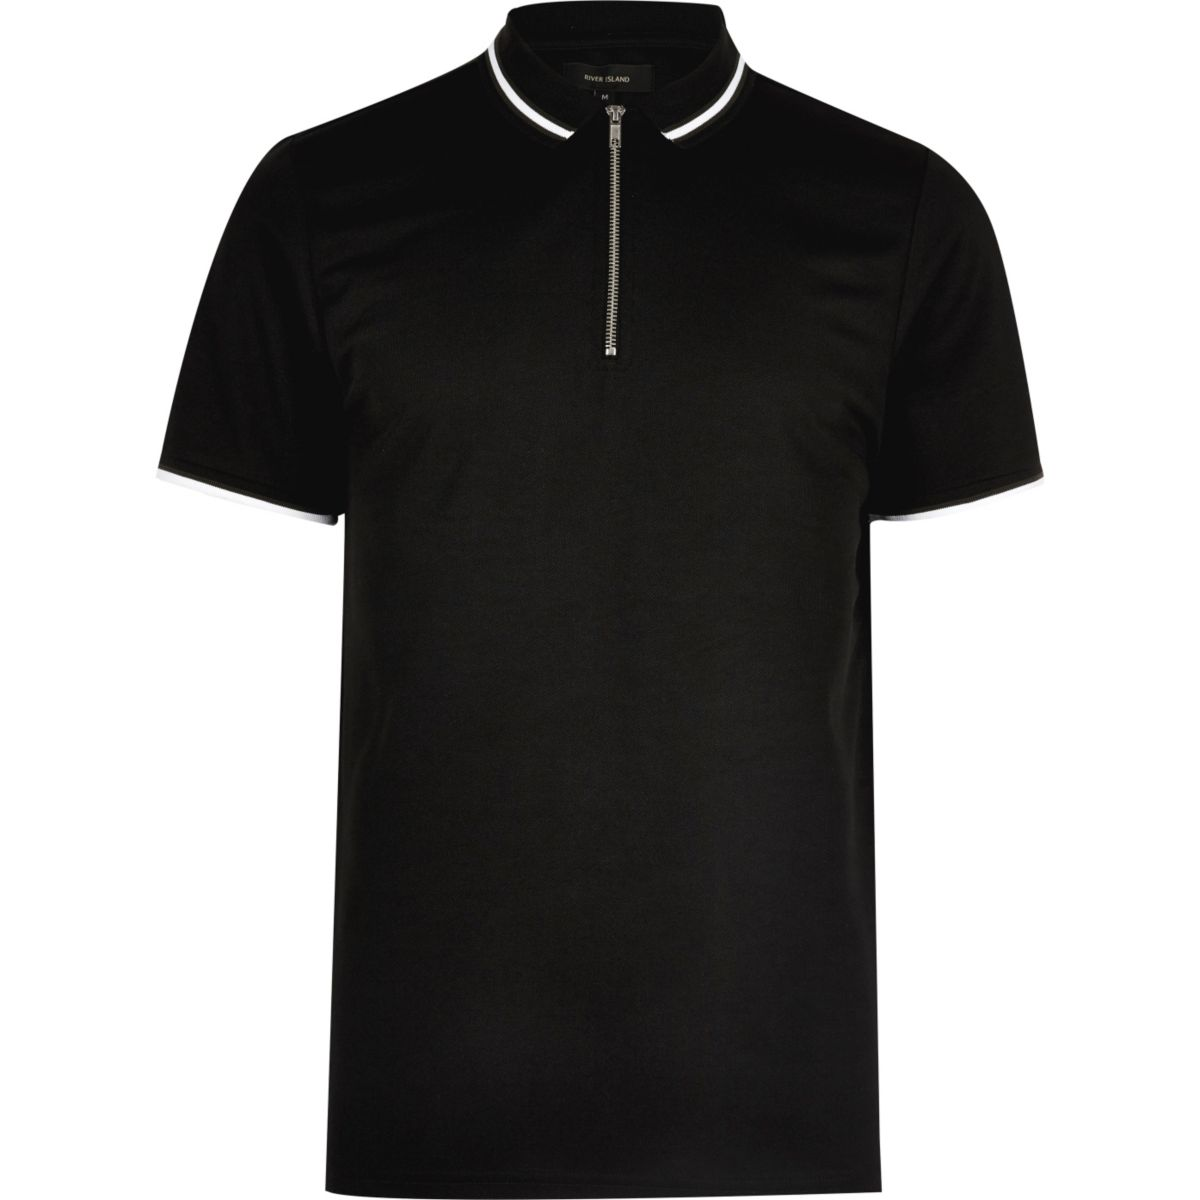 Black zip placket polo shirt